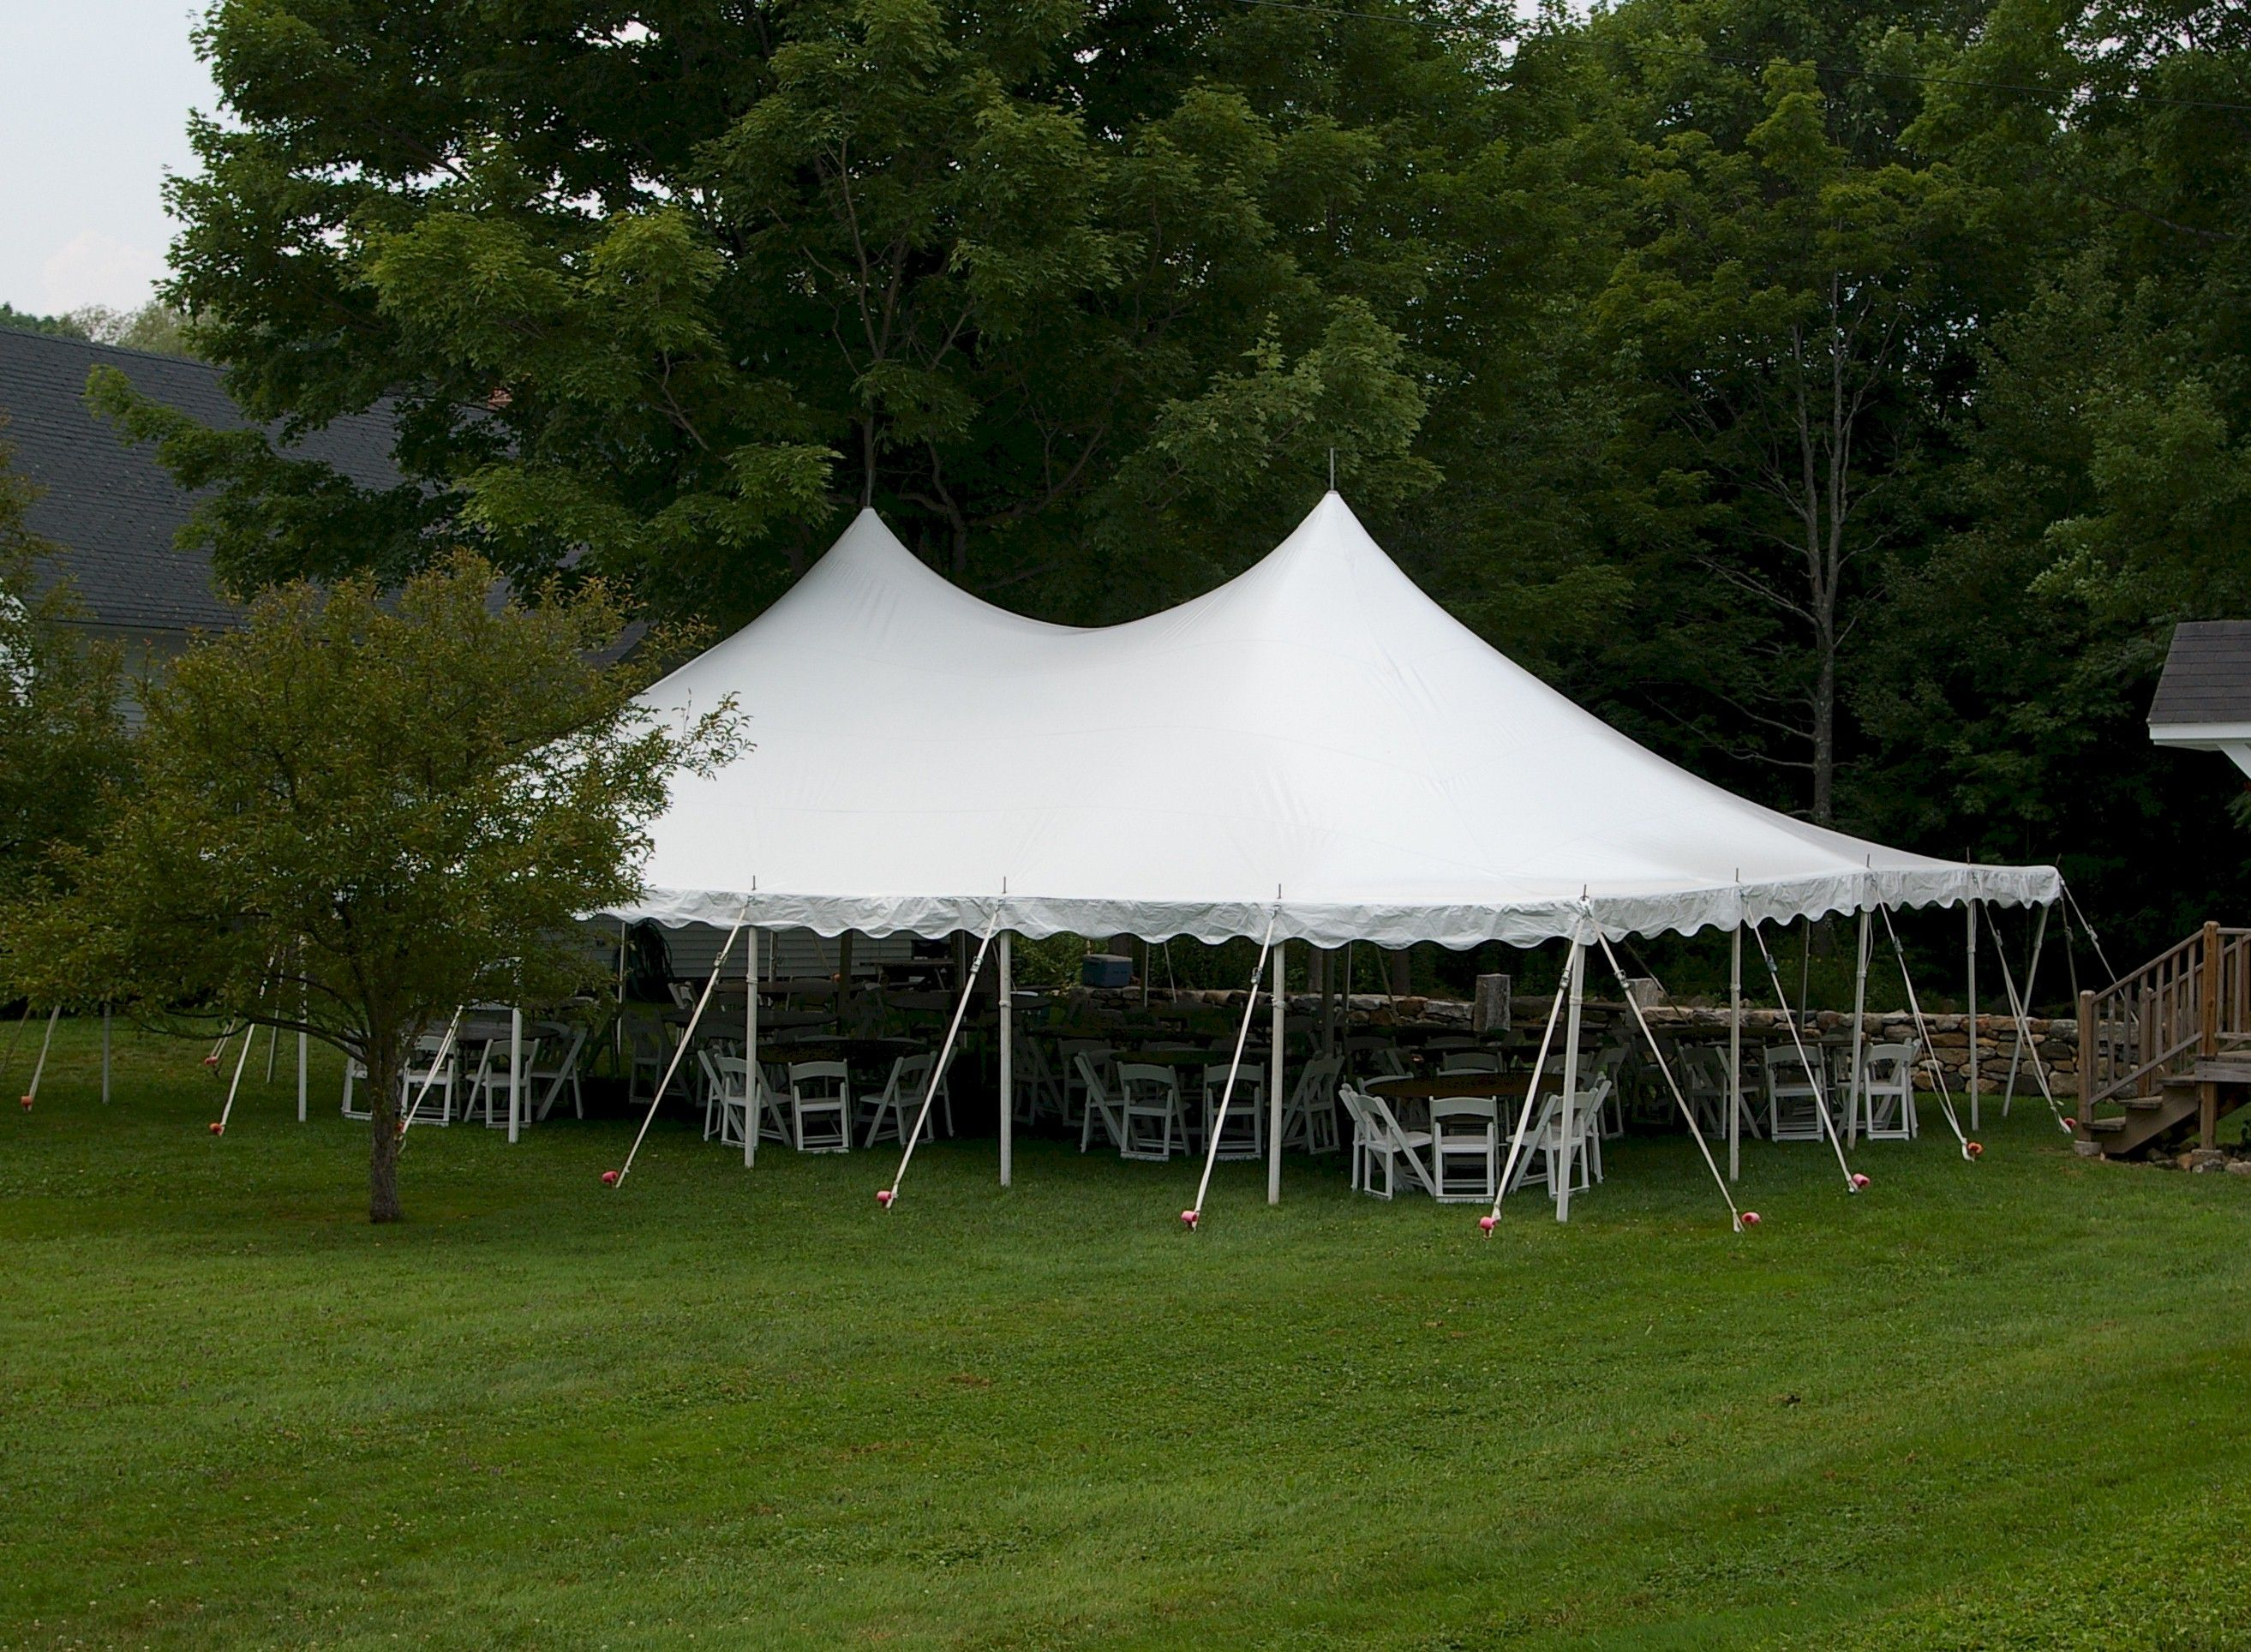 30x45 Pole Tent This Is Media G K Rental Tent Rentals Canopy Tent Outdoor Event Rental